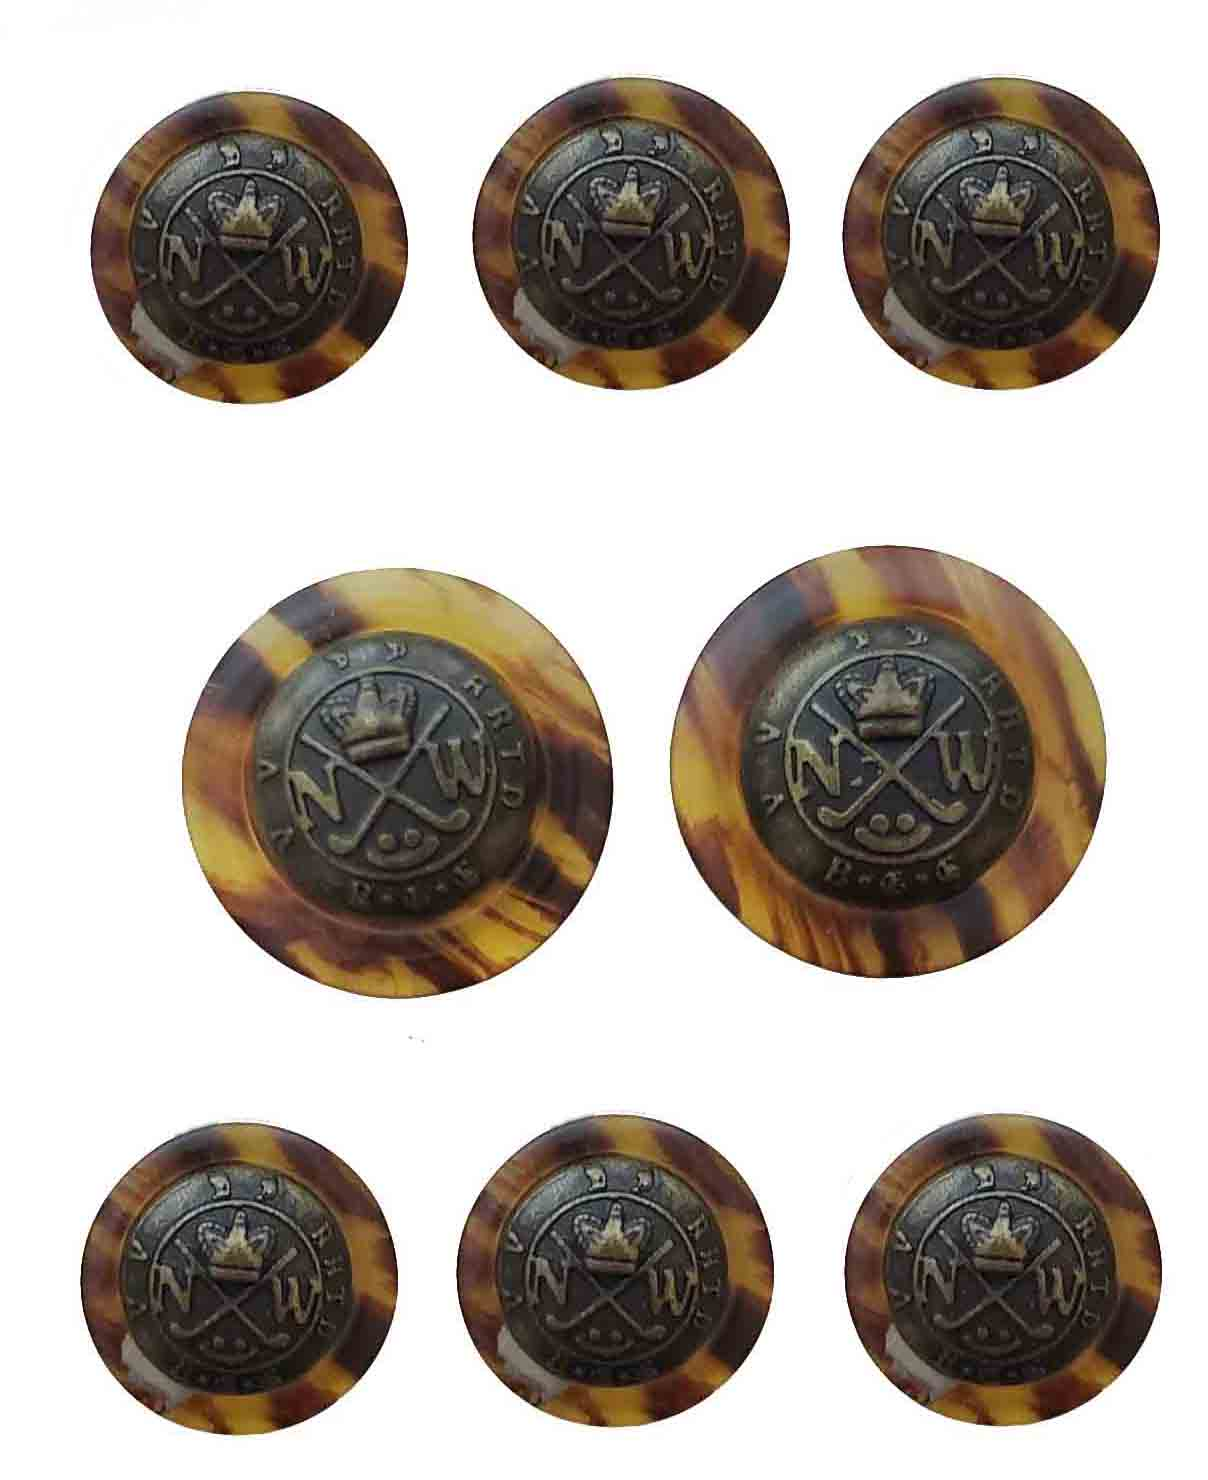 Vintage Club Room Blazer Buttons Set Tortoise Shell Pattern Amber Brown Gold Brass and Resin NW Monogram Golf Crown Men's